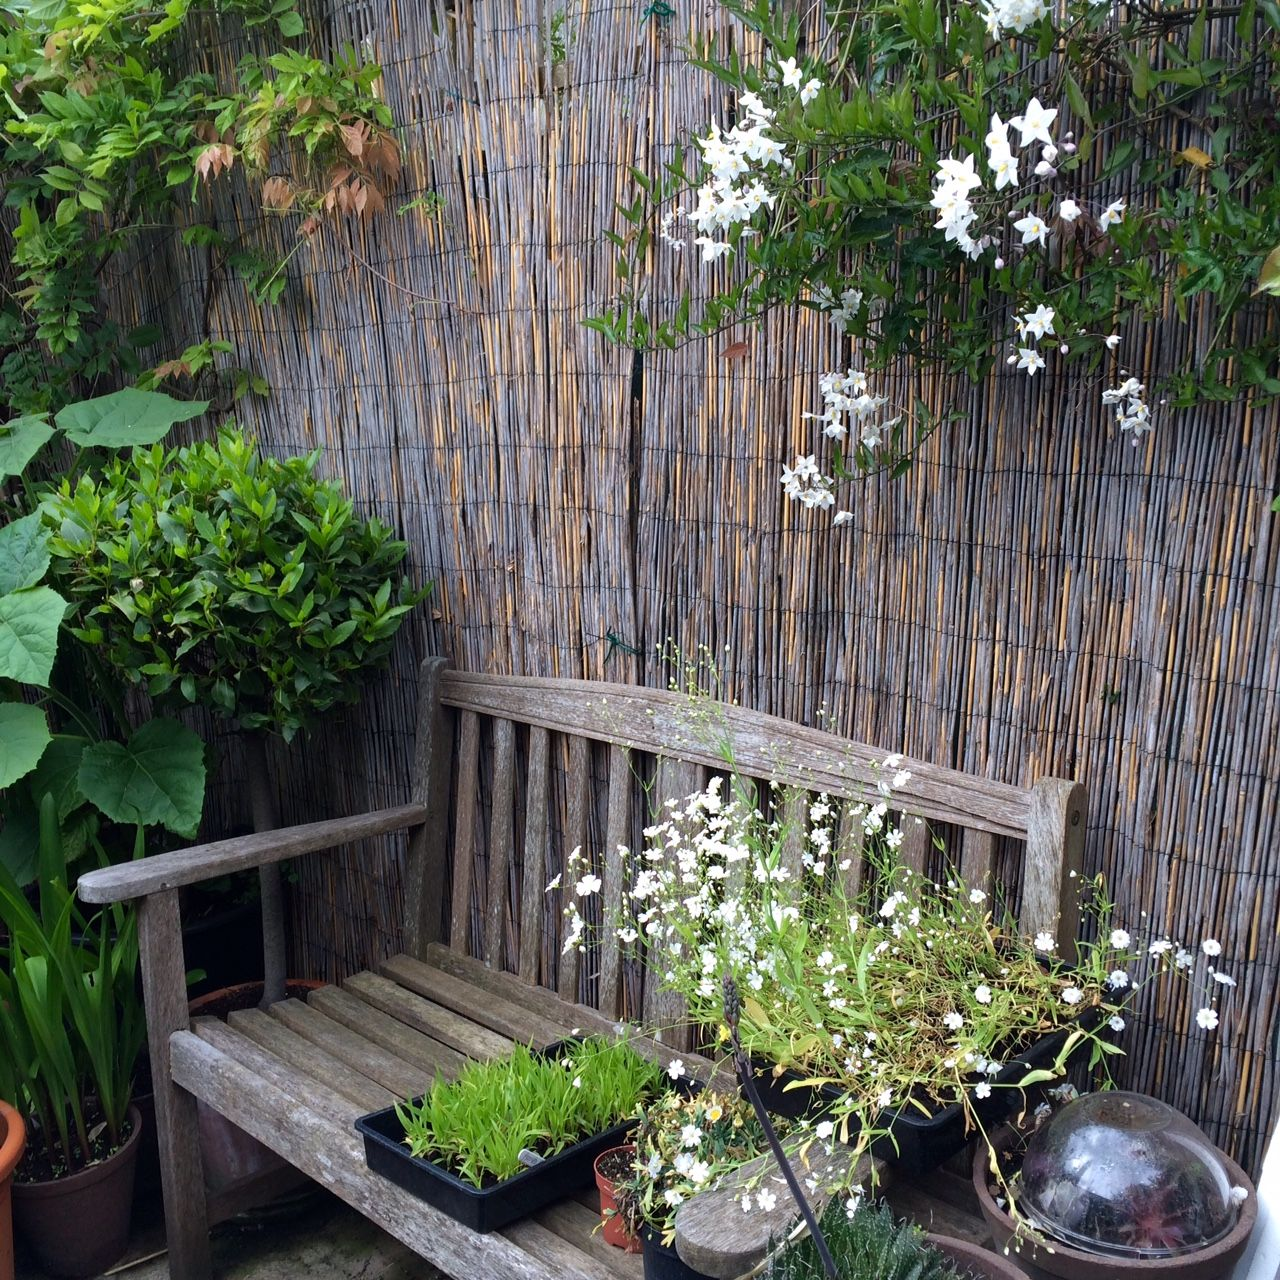 Long Narrow Garden Design Ideas: 8 Effective Tips For Narrow Town Garden Success